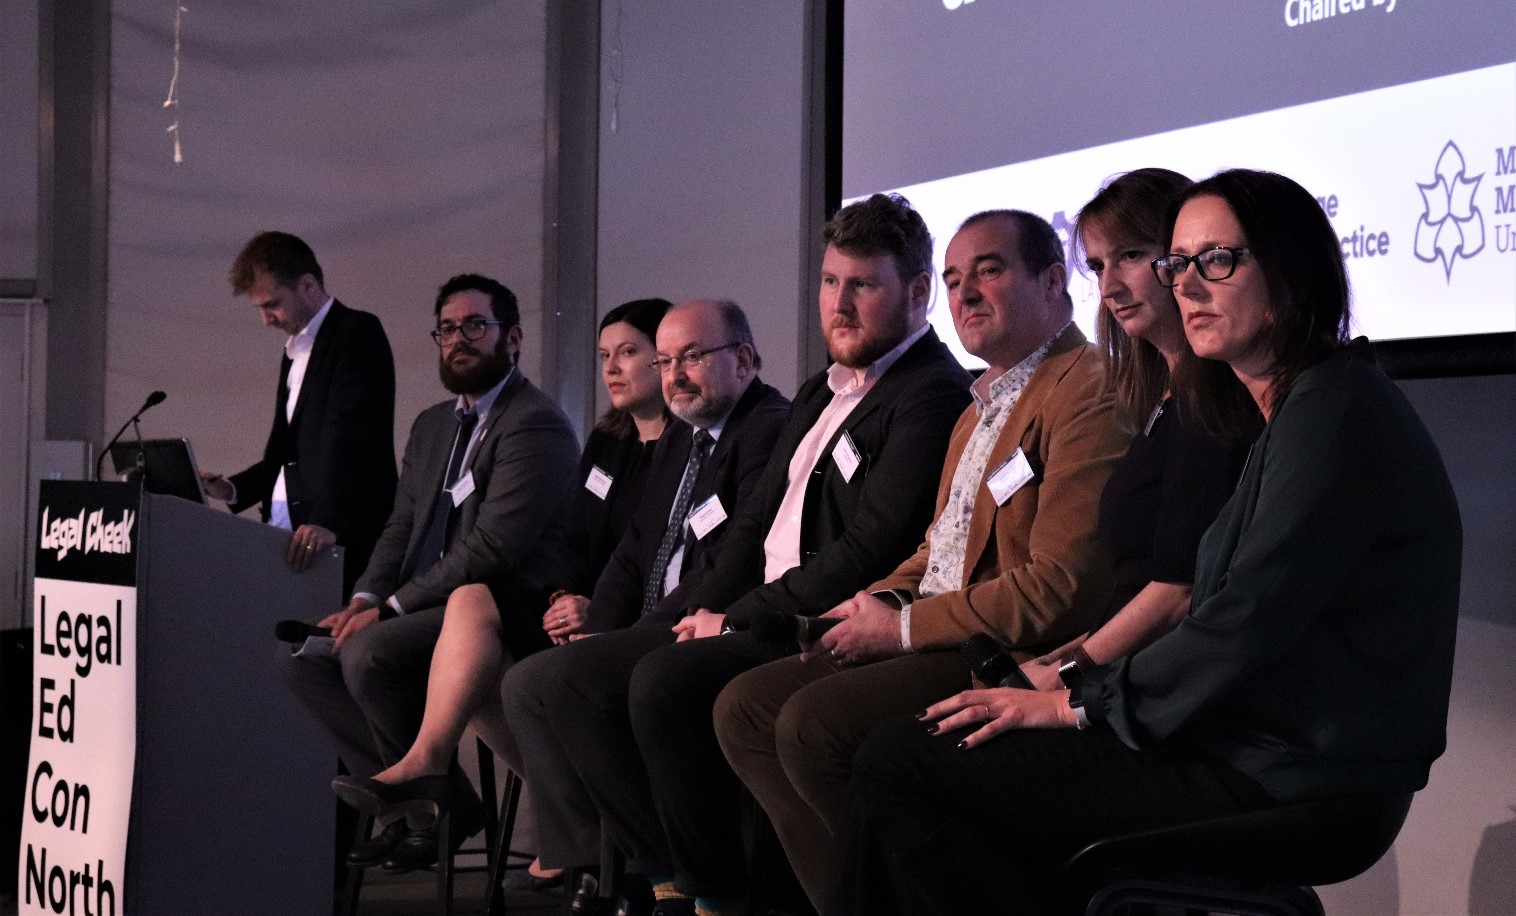 IncloudCounsel leadership team speak at a legal ed conference